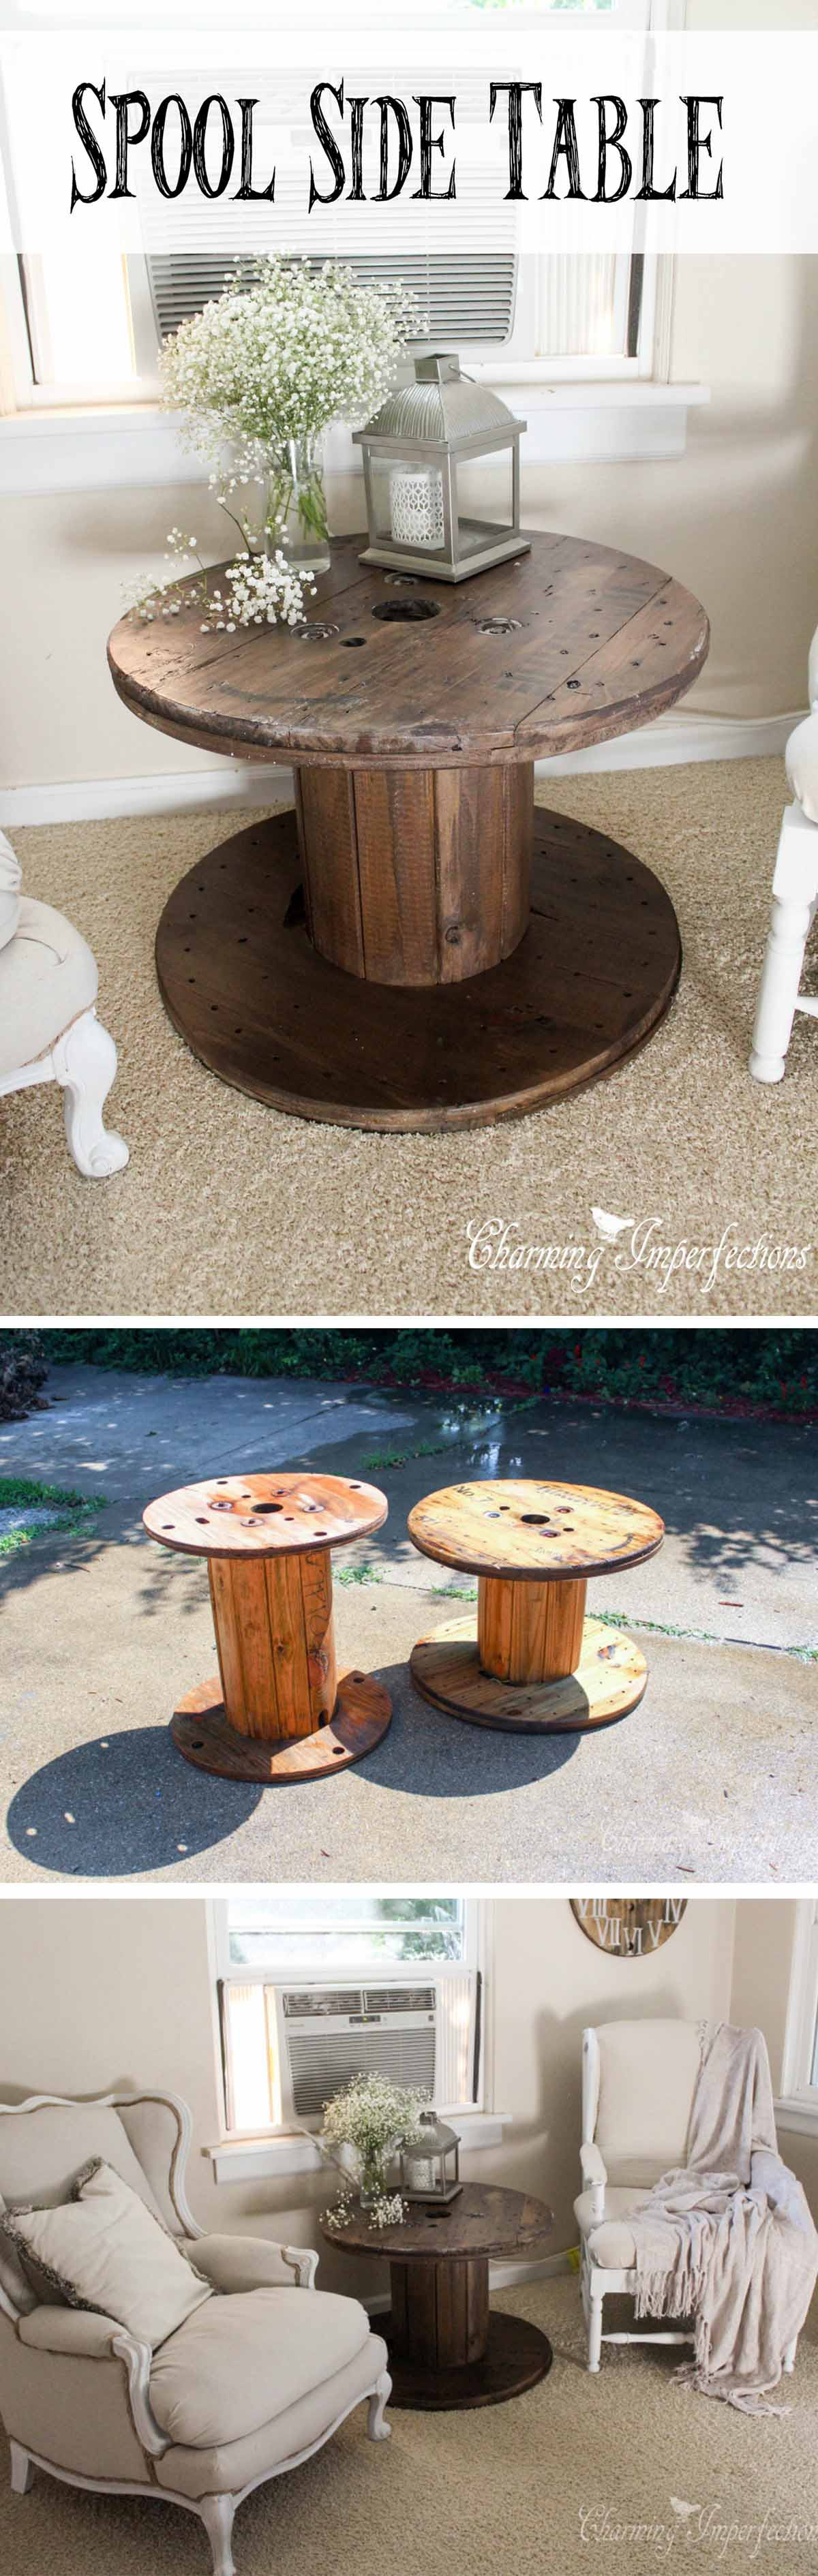 tree trunk side table the terrific farmhouse end ideas best diy coffee and designs for homebnc easy industrial wooden spool accent round with shelf dark cherry wood used furniture